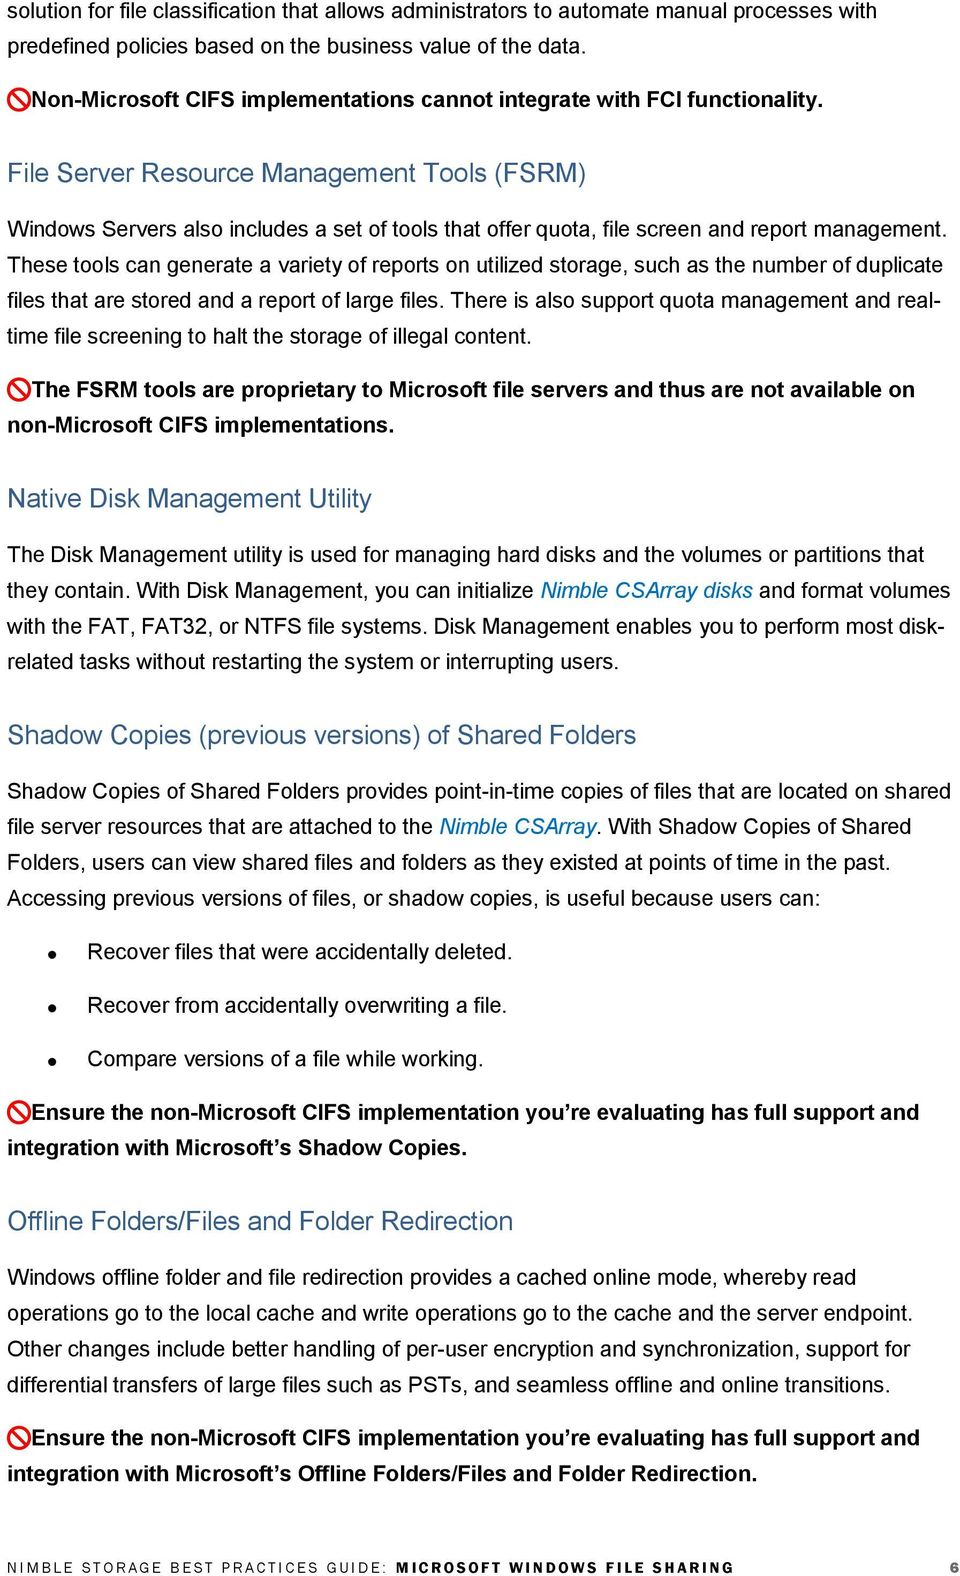 File Server Resource Management Tools (FSRM) Windows Servers also includes a set of tools that offer quota, file screen and report management.